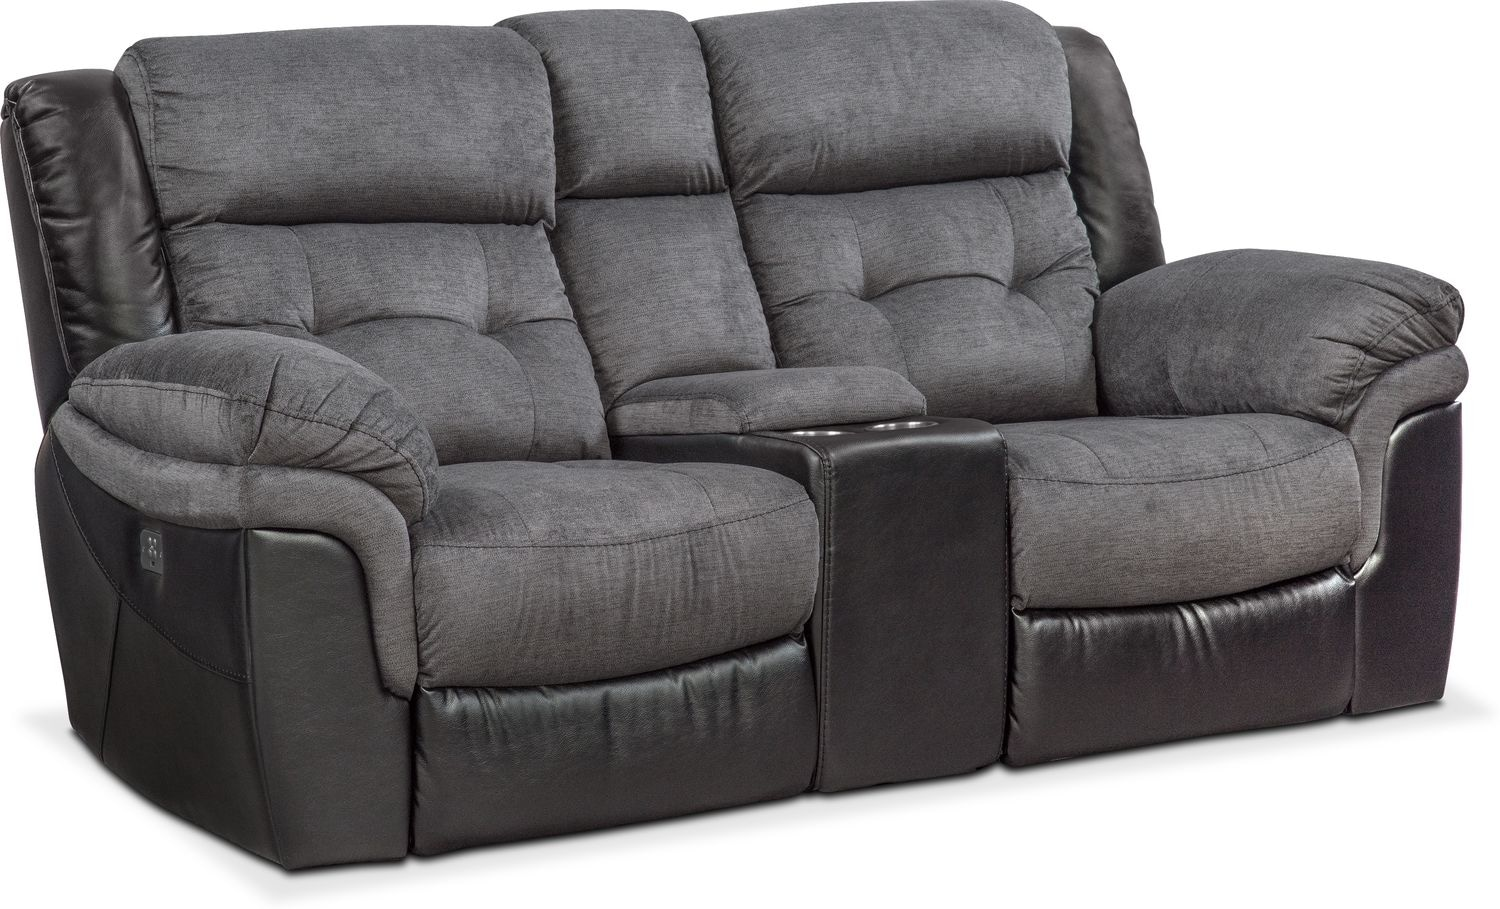 Tacoma Dual Power Reclining Loveseat with Console - Black